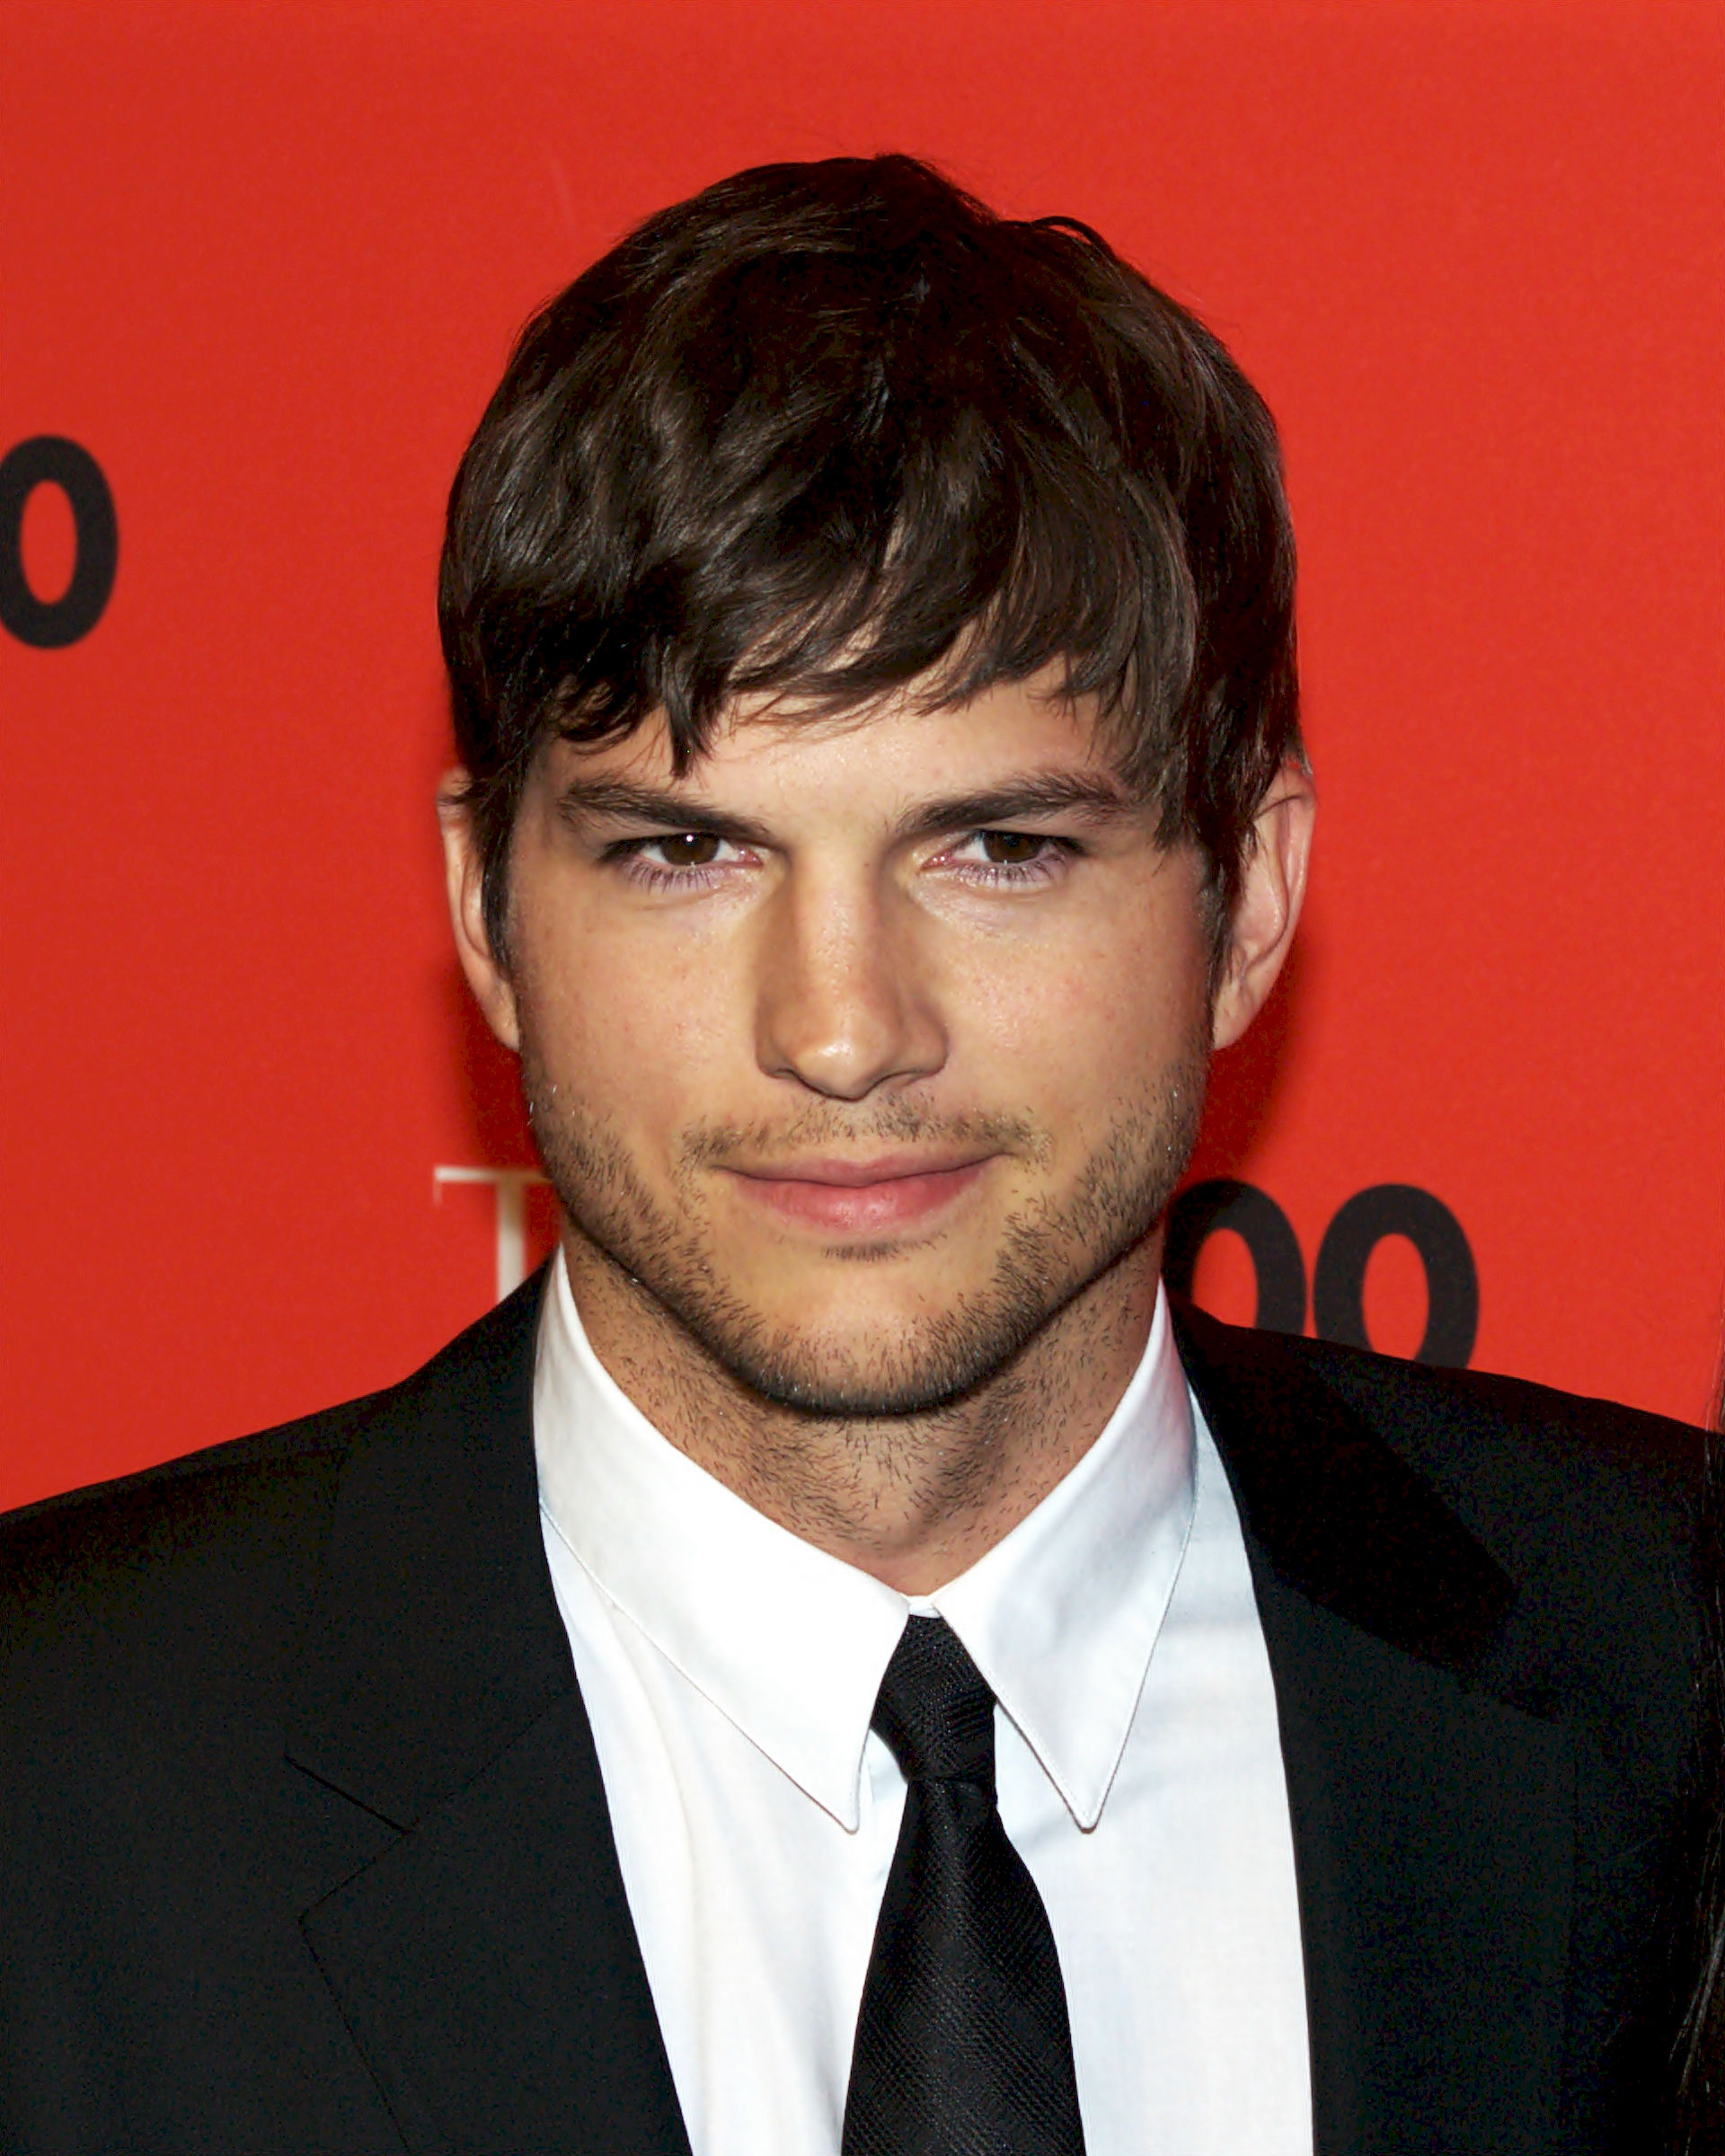 Photo of Ashton Kutcher: Actor from the United States